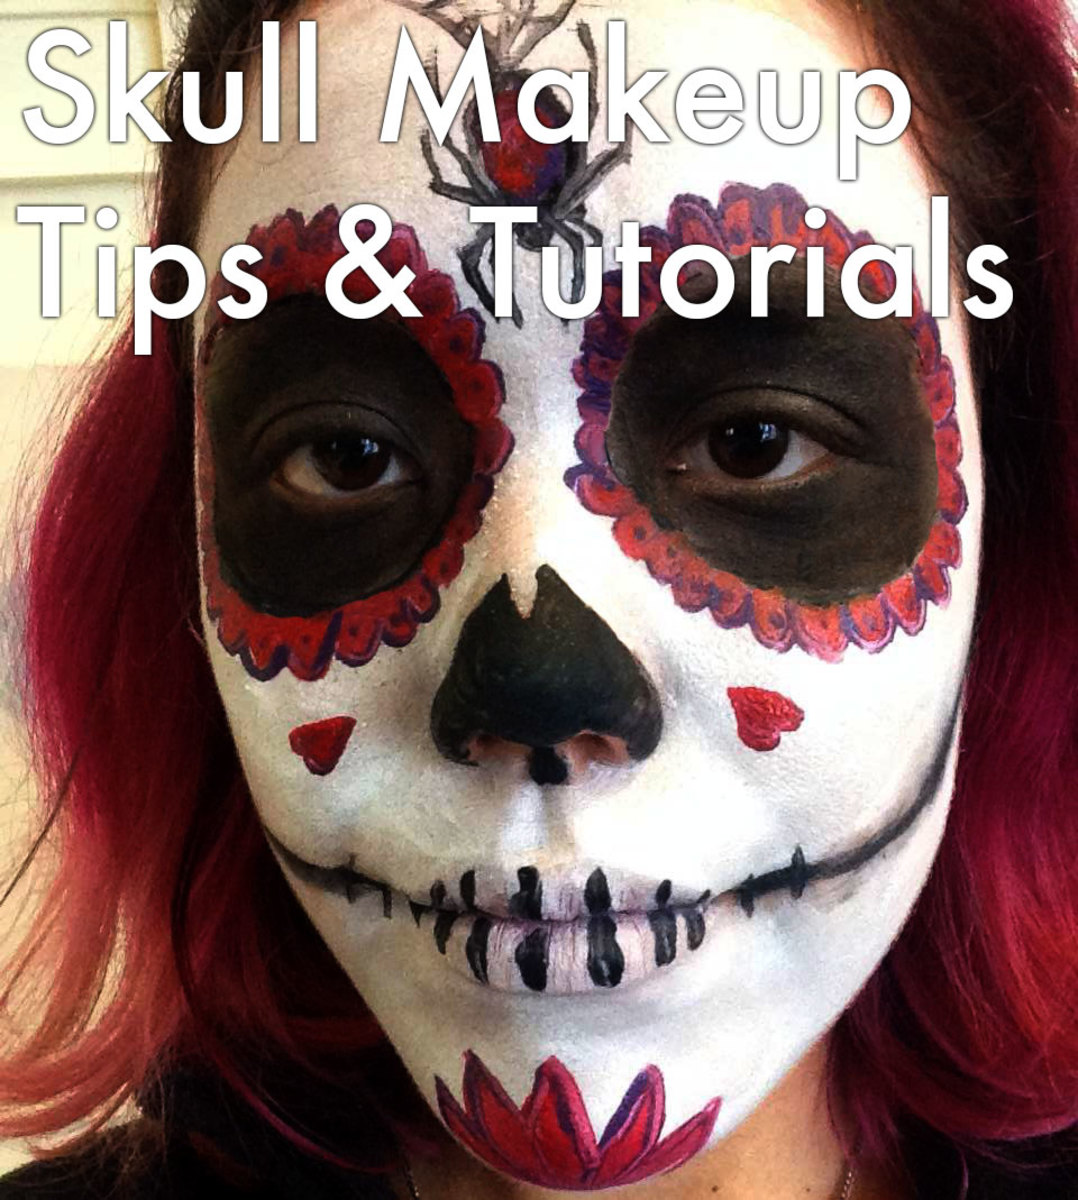 Skull makeup tips and tutorials.